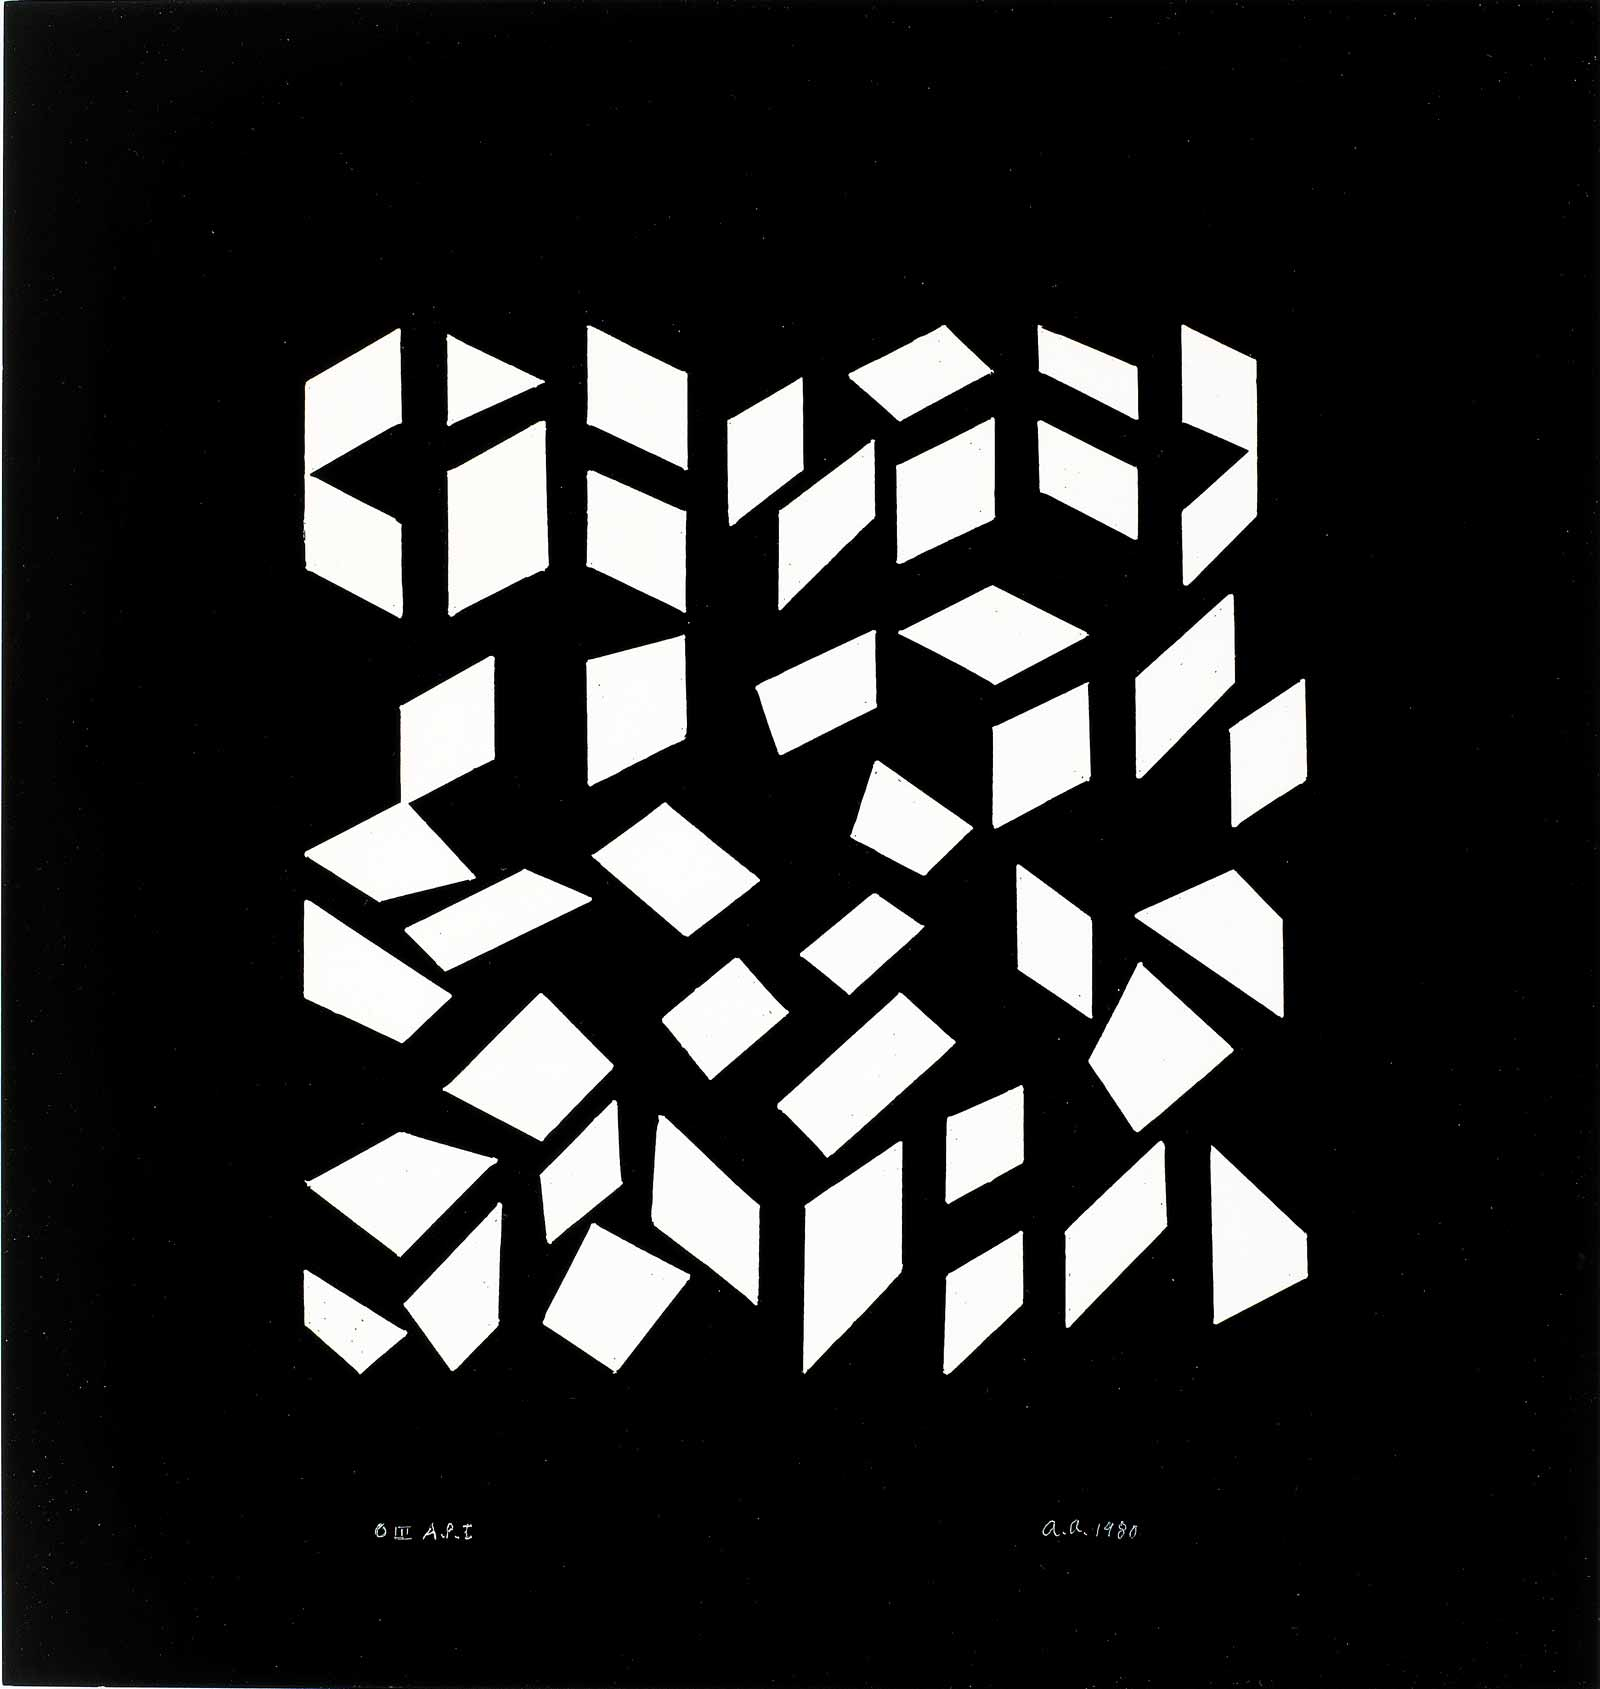 albers-orchestra-iii-1980